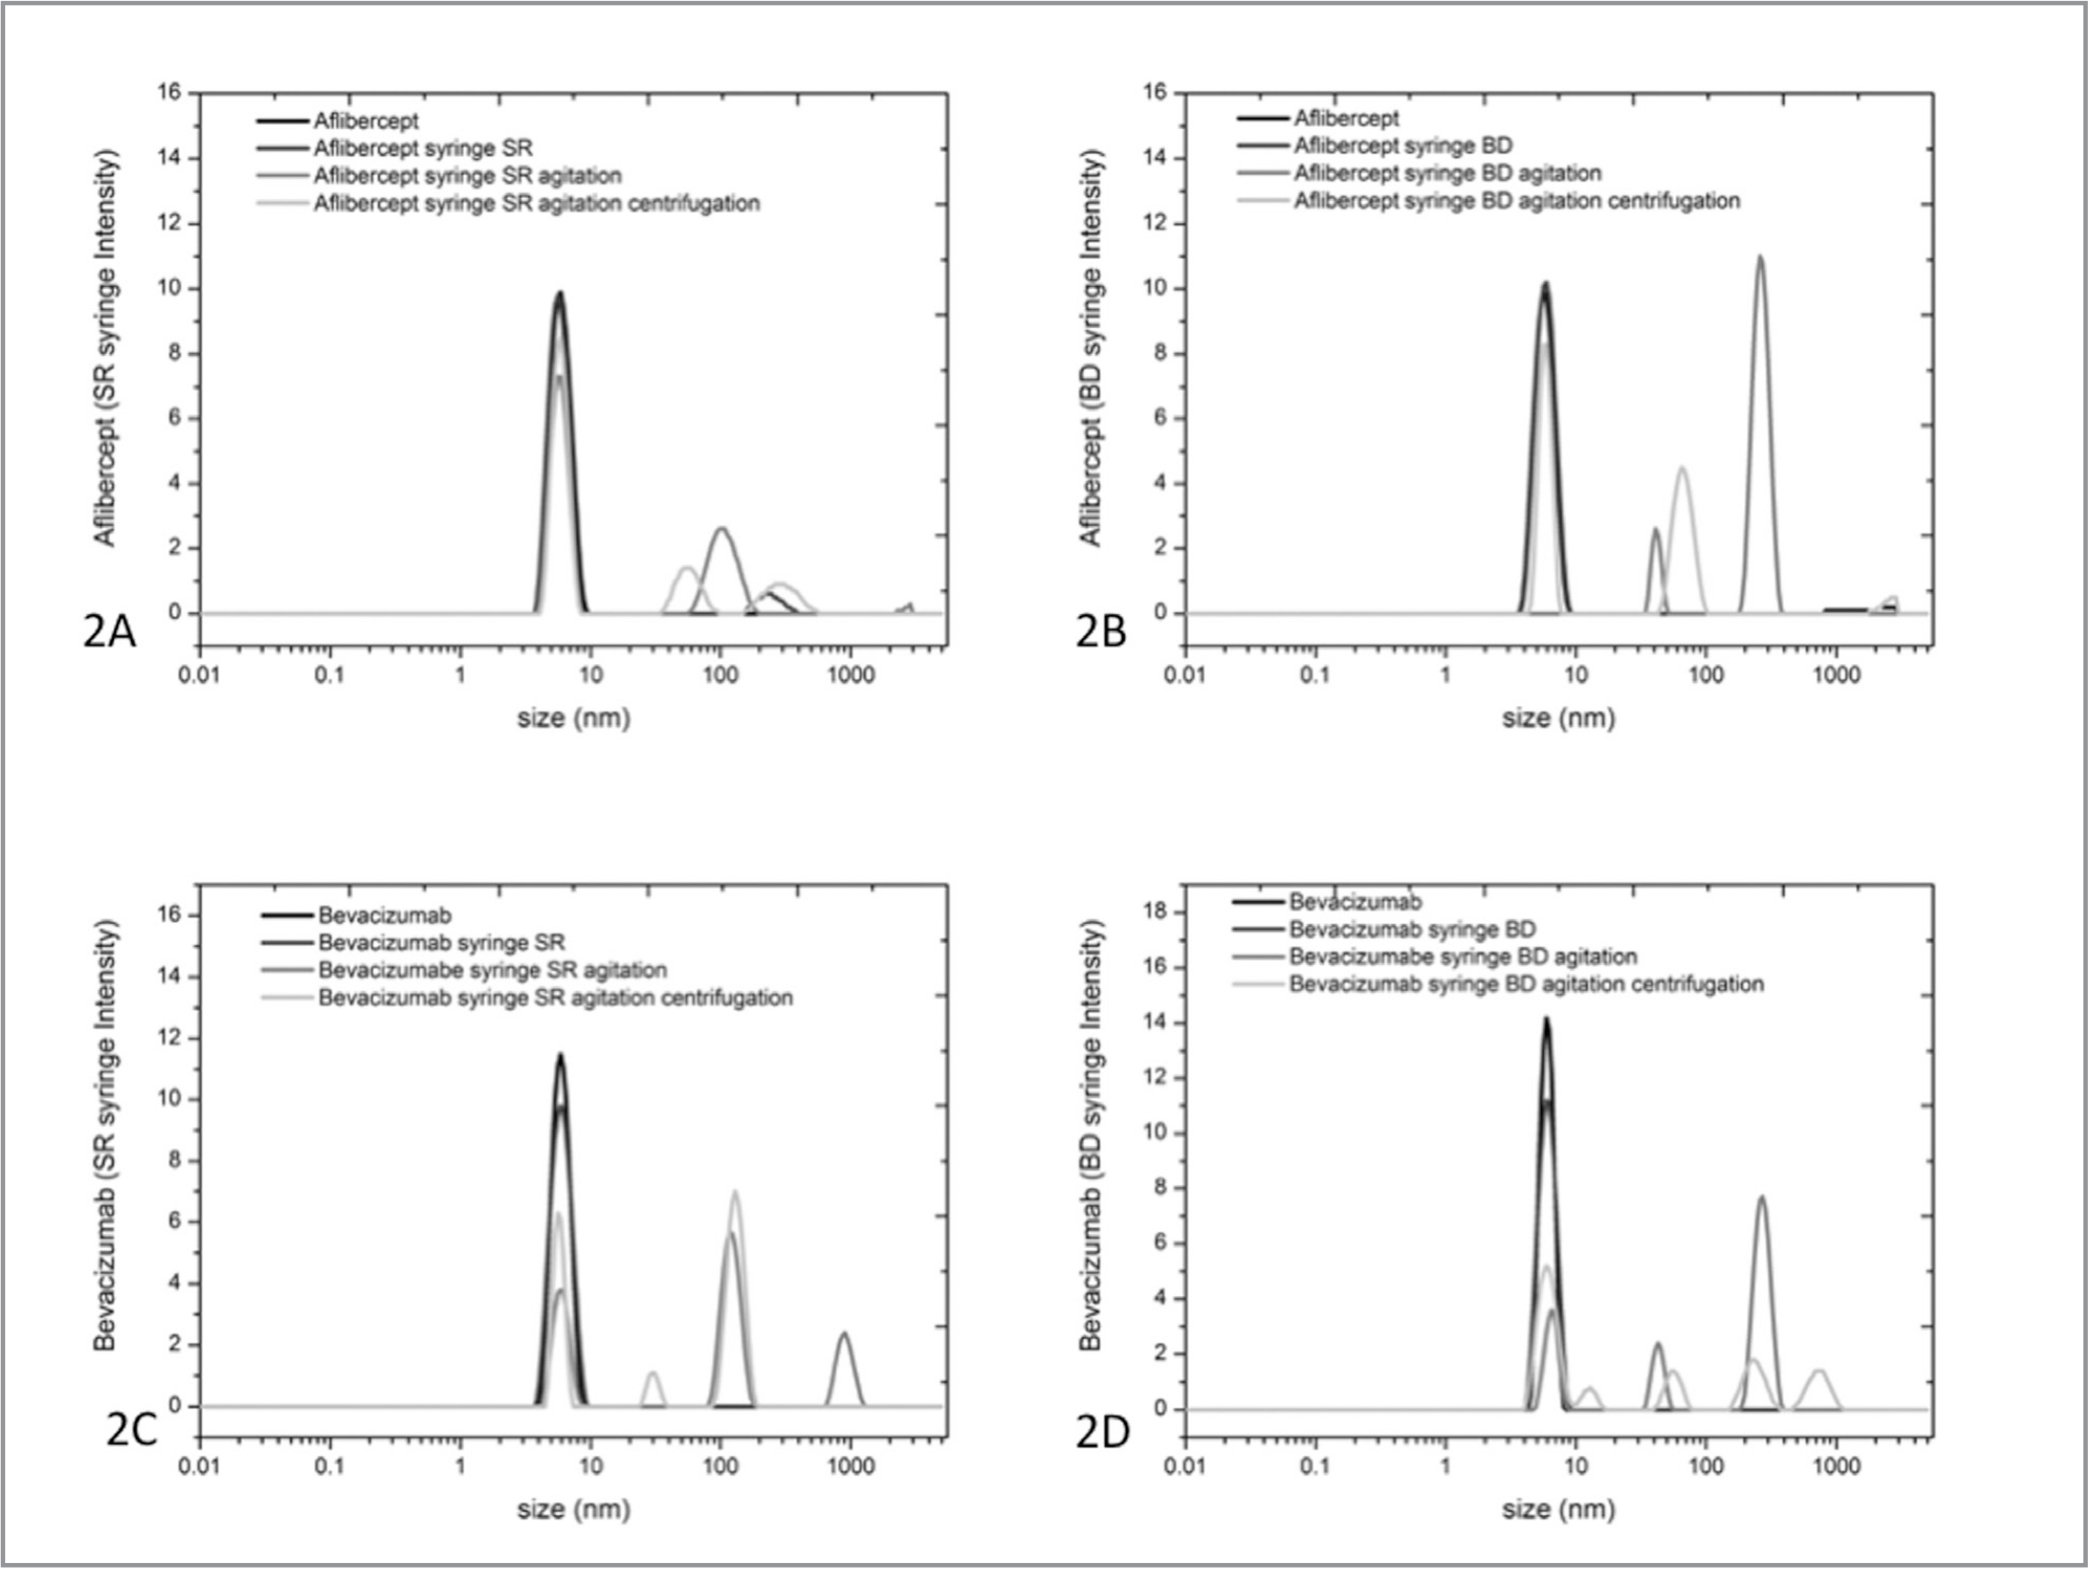 Profiles of the light-scattering intensities of aflibercept and bevacizumab during passage through Becton-Dickinson (BD) and Saldanha Rodrigues (SR) syringes and subjected to agitation only or followed by centrifugation. (A, B) Light-scattering intensities of aflibercept. (C, D) Light-scattering intensities of bevacizumab. The agitated samples form different kinds of aggregates.